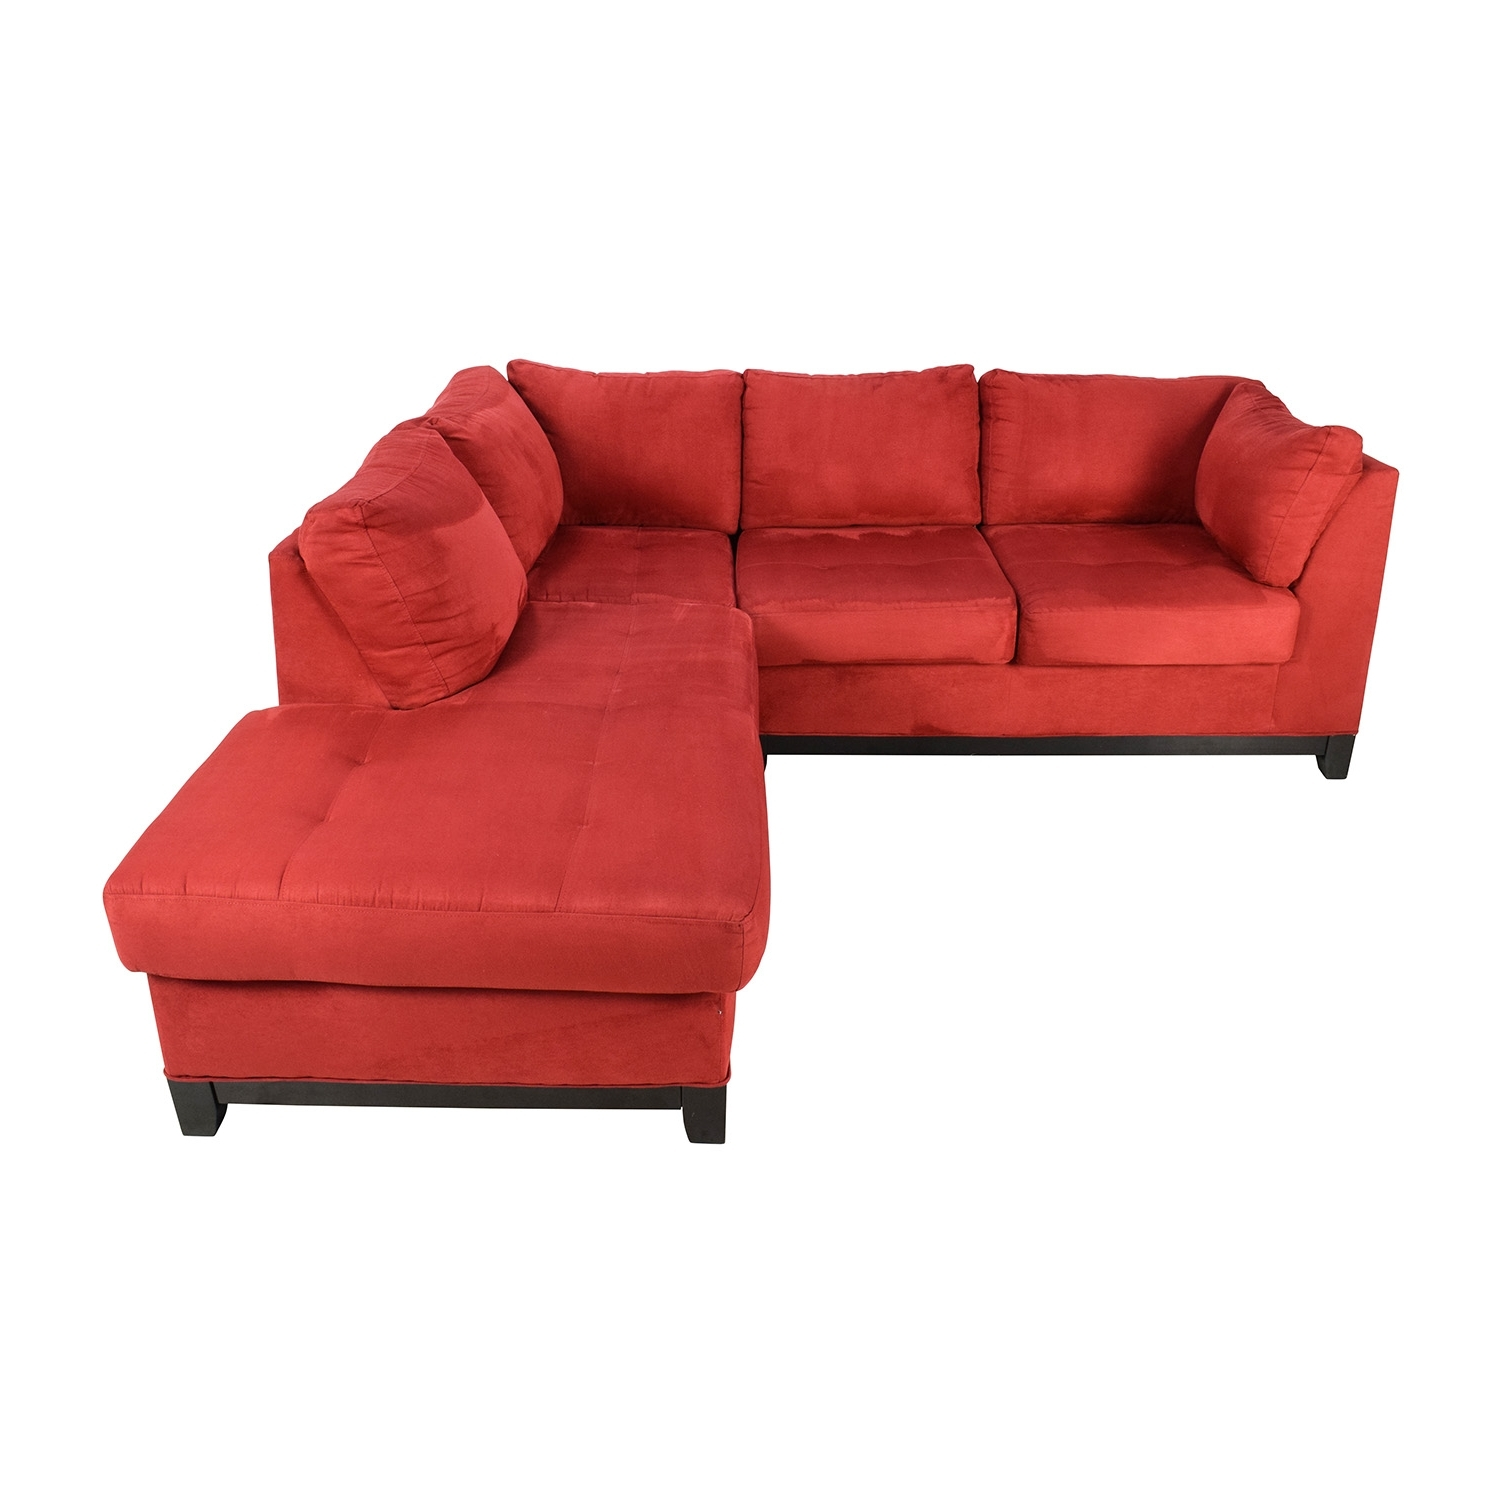 [%67% Off – Raymour And Flanigan Raymour & Flanigan Zella Red Regarding Well Liked Raymour And Flanigan Sectional Sofas|Raymour And Flanigan Sectional Sofas Throughout Famous 67% Off – Raymour And Flanigan Raymour & Flanigan Zella Red|Most Popular Raymour And Flanigan Sectional Sofas Intended For 67% Off – Raymour And Flanigan Raymour & Flanigan Zella Red|Preferred 67% Off – Raymour And Flanigan Raymour & Flanigan Zella Red Regarding Raymour And Flanigan Sectional Sofas%] (View 5 of 20)